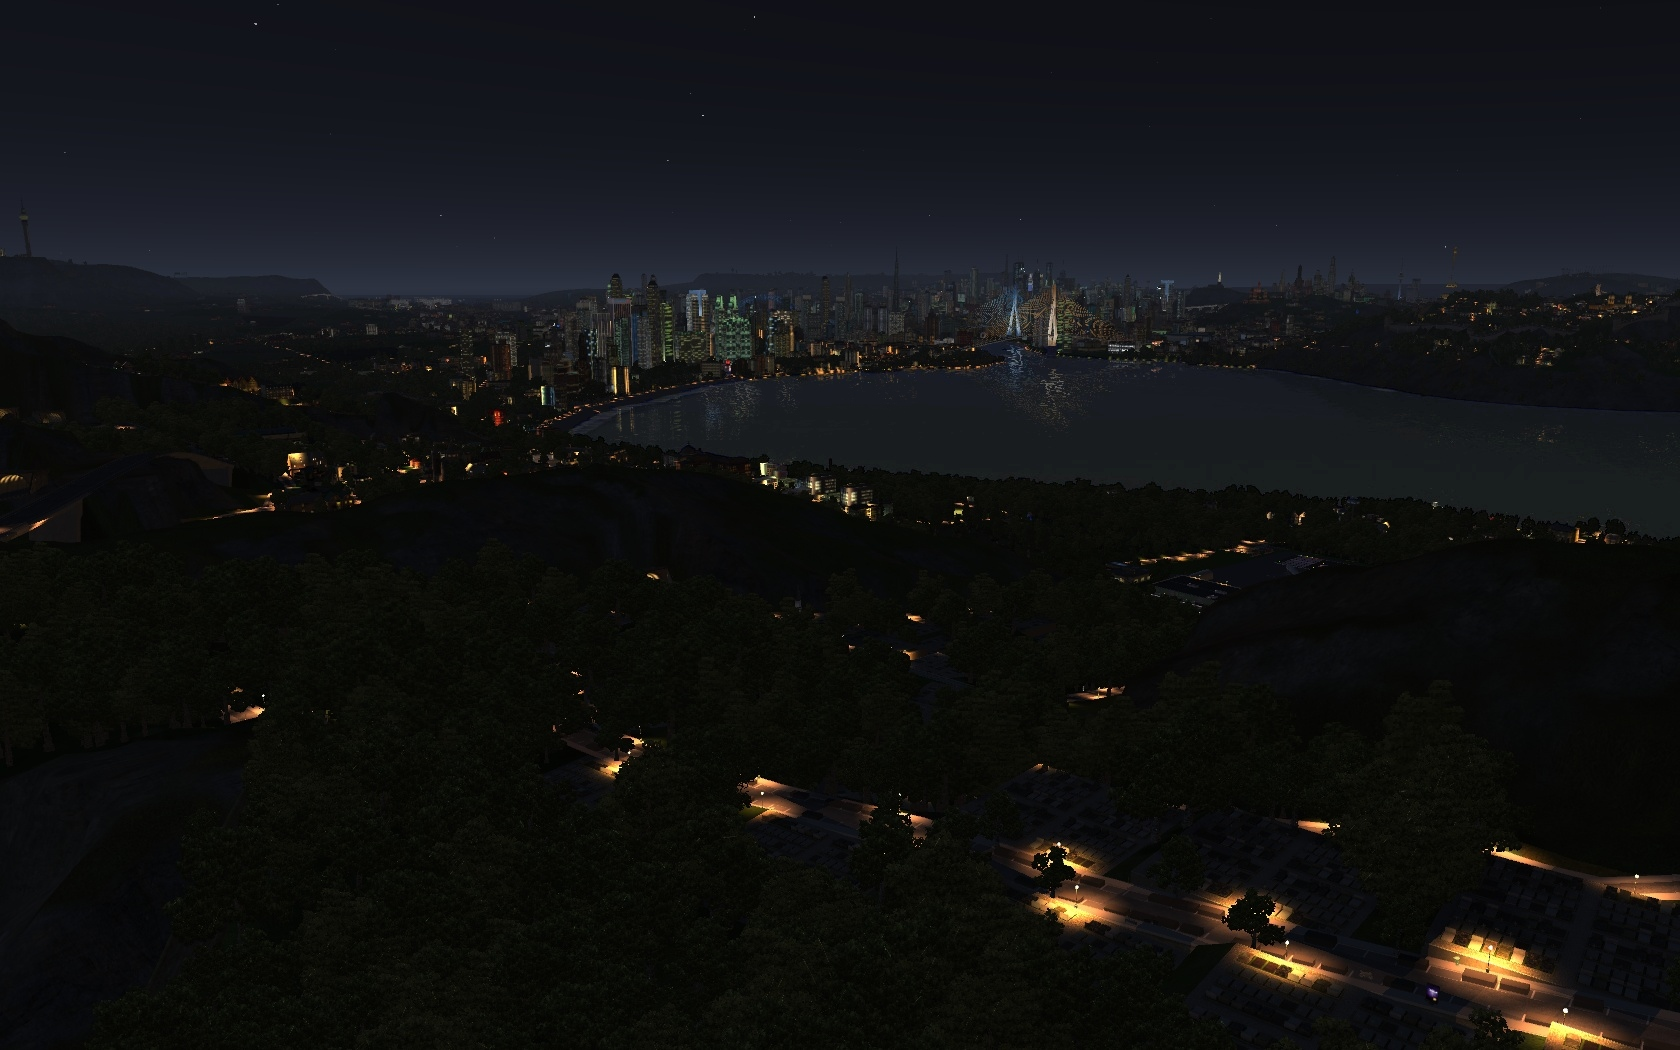 riverside-nightview.jpg